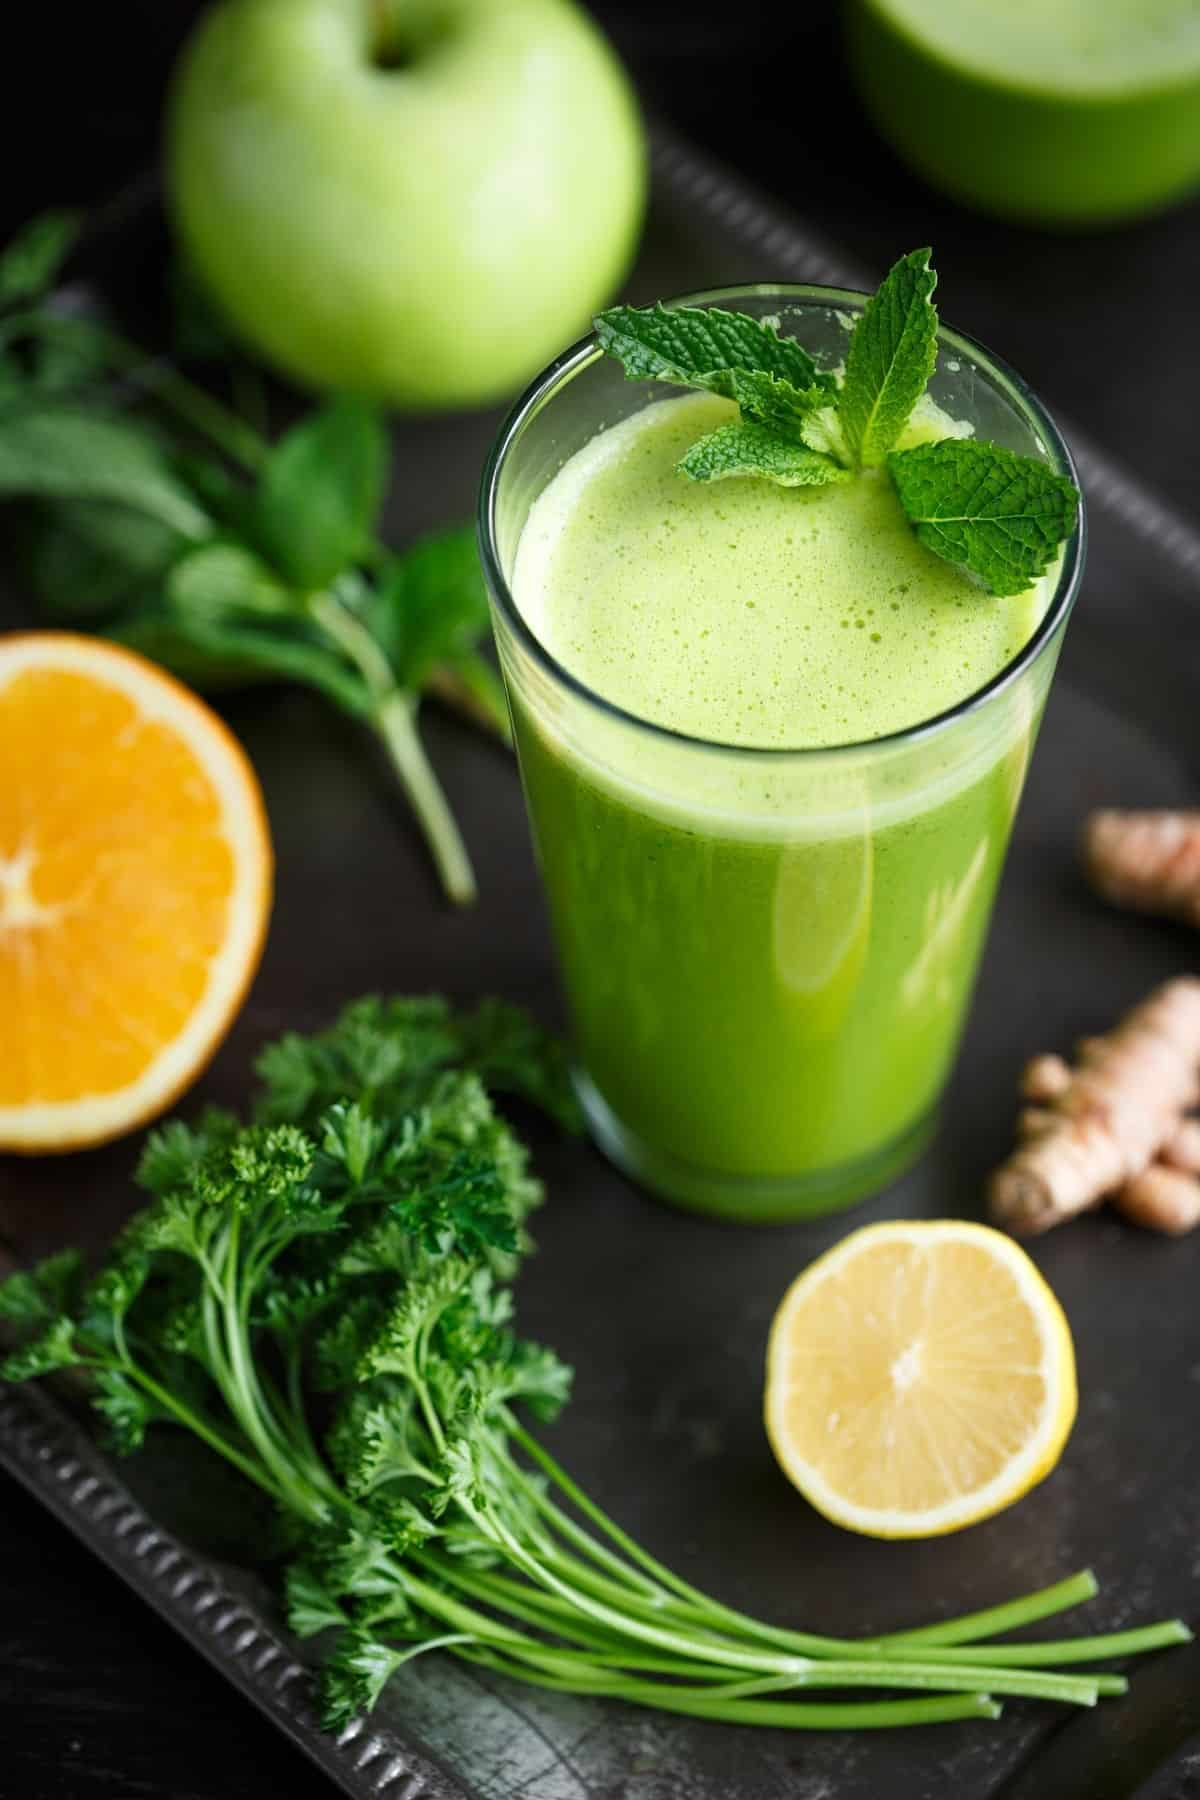 green juice served with mint, parsley, lemon, and apple